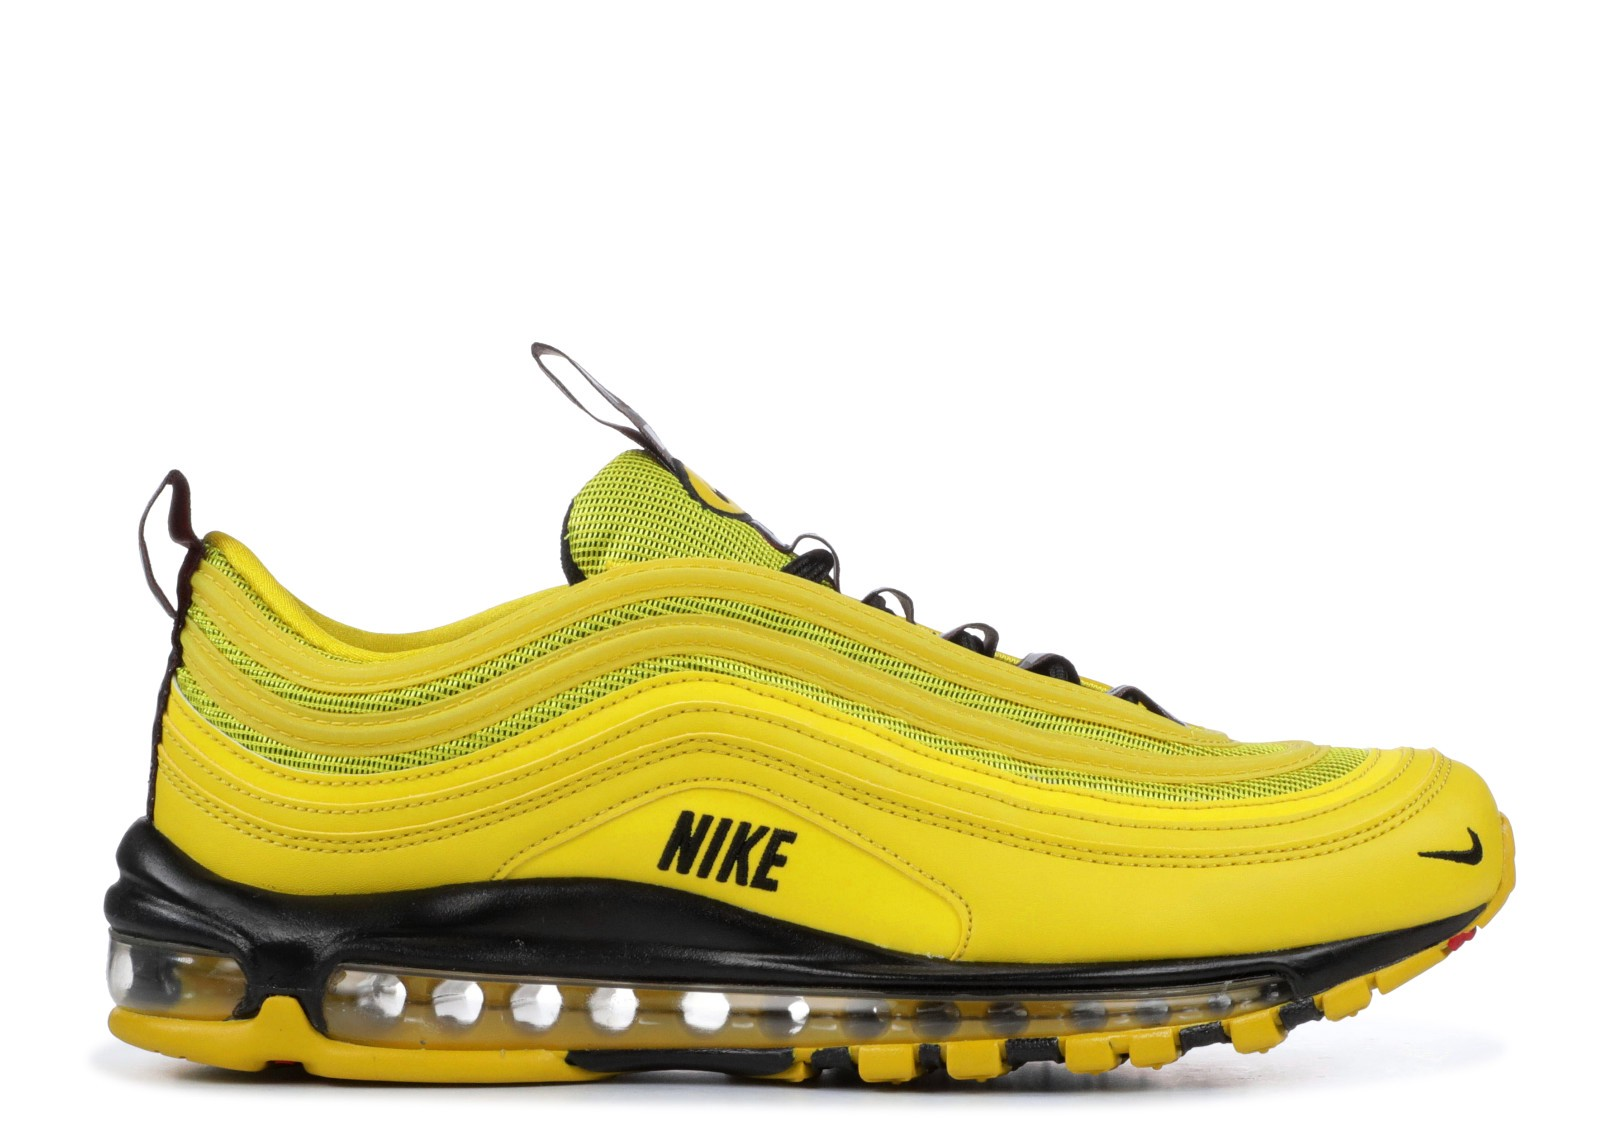 competitive price c8858 12d8c yellow and black air max 97